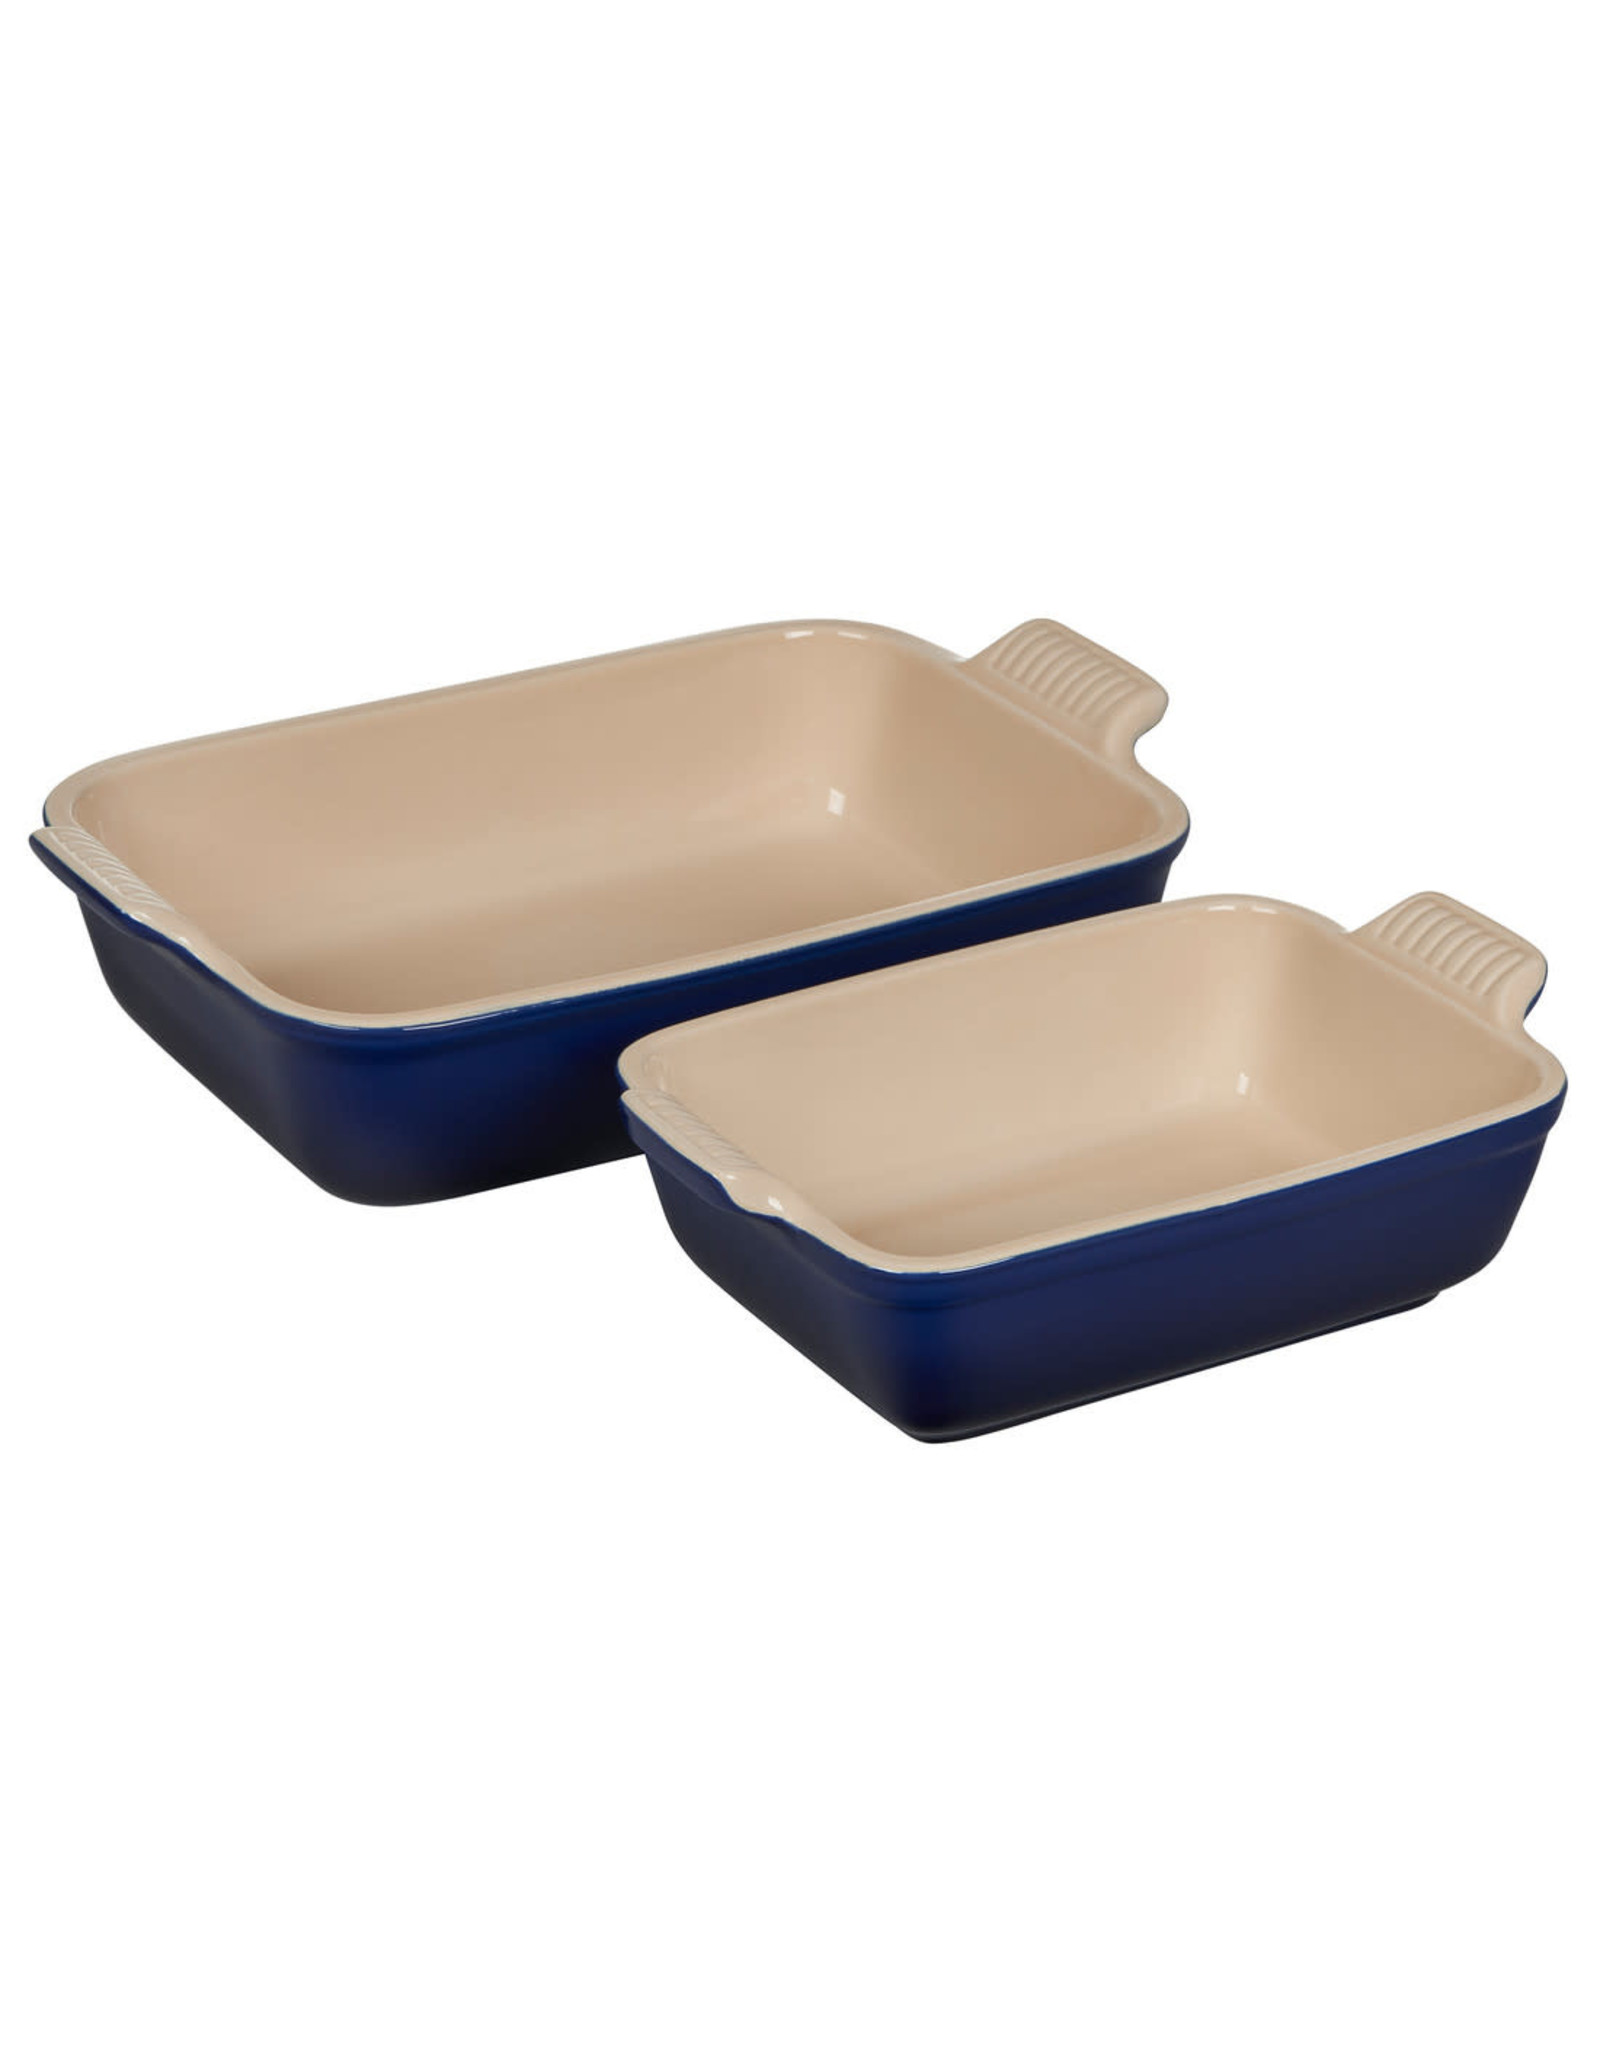 Le Creuset Le Creuset Set of 2 Heritage Rectangular Dishes - Indigo